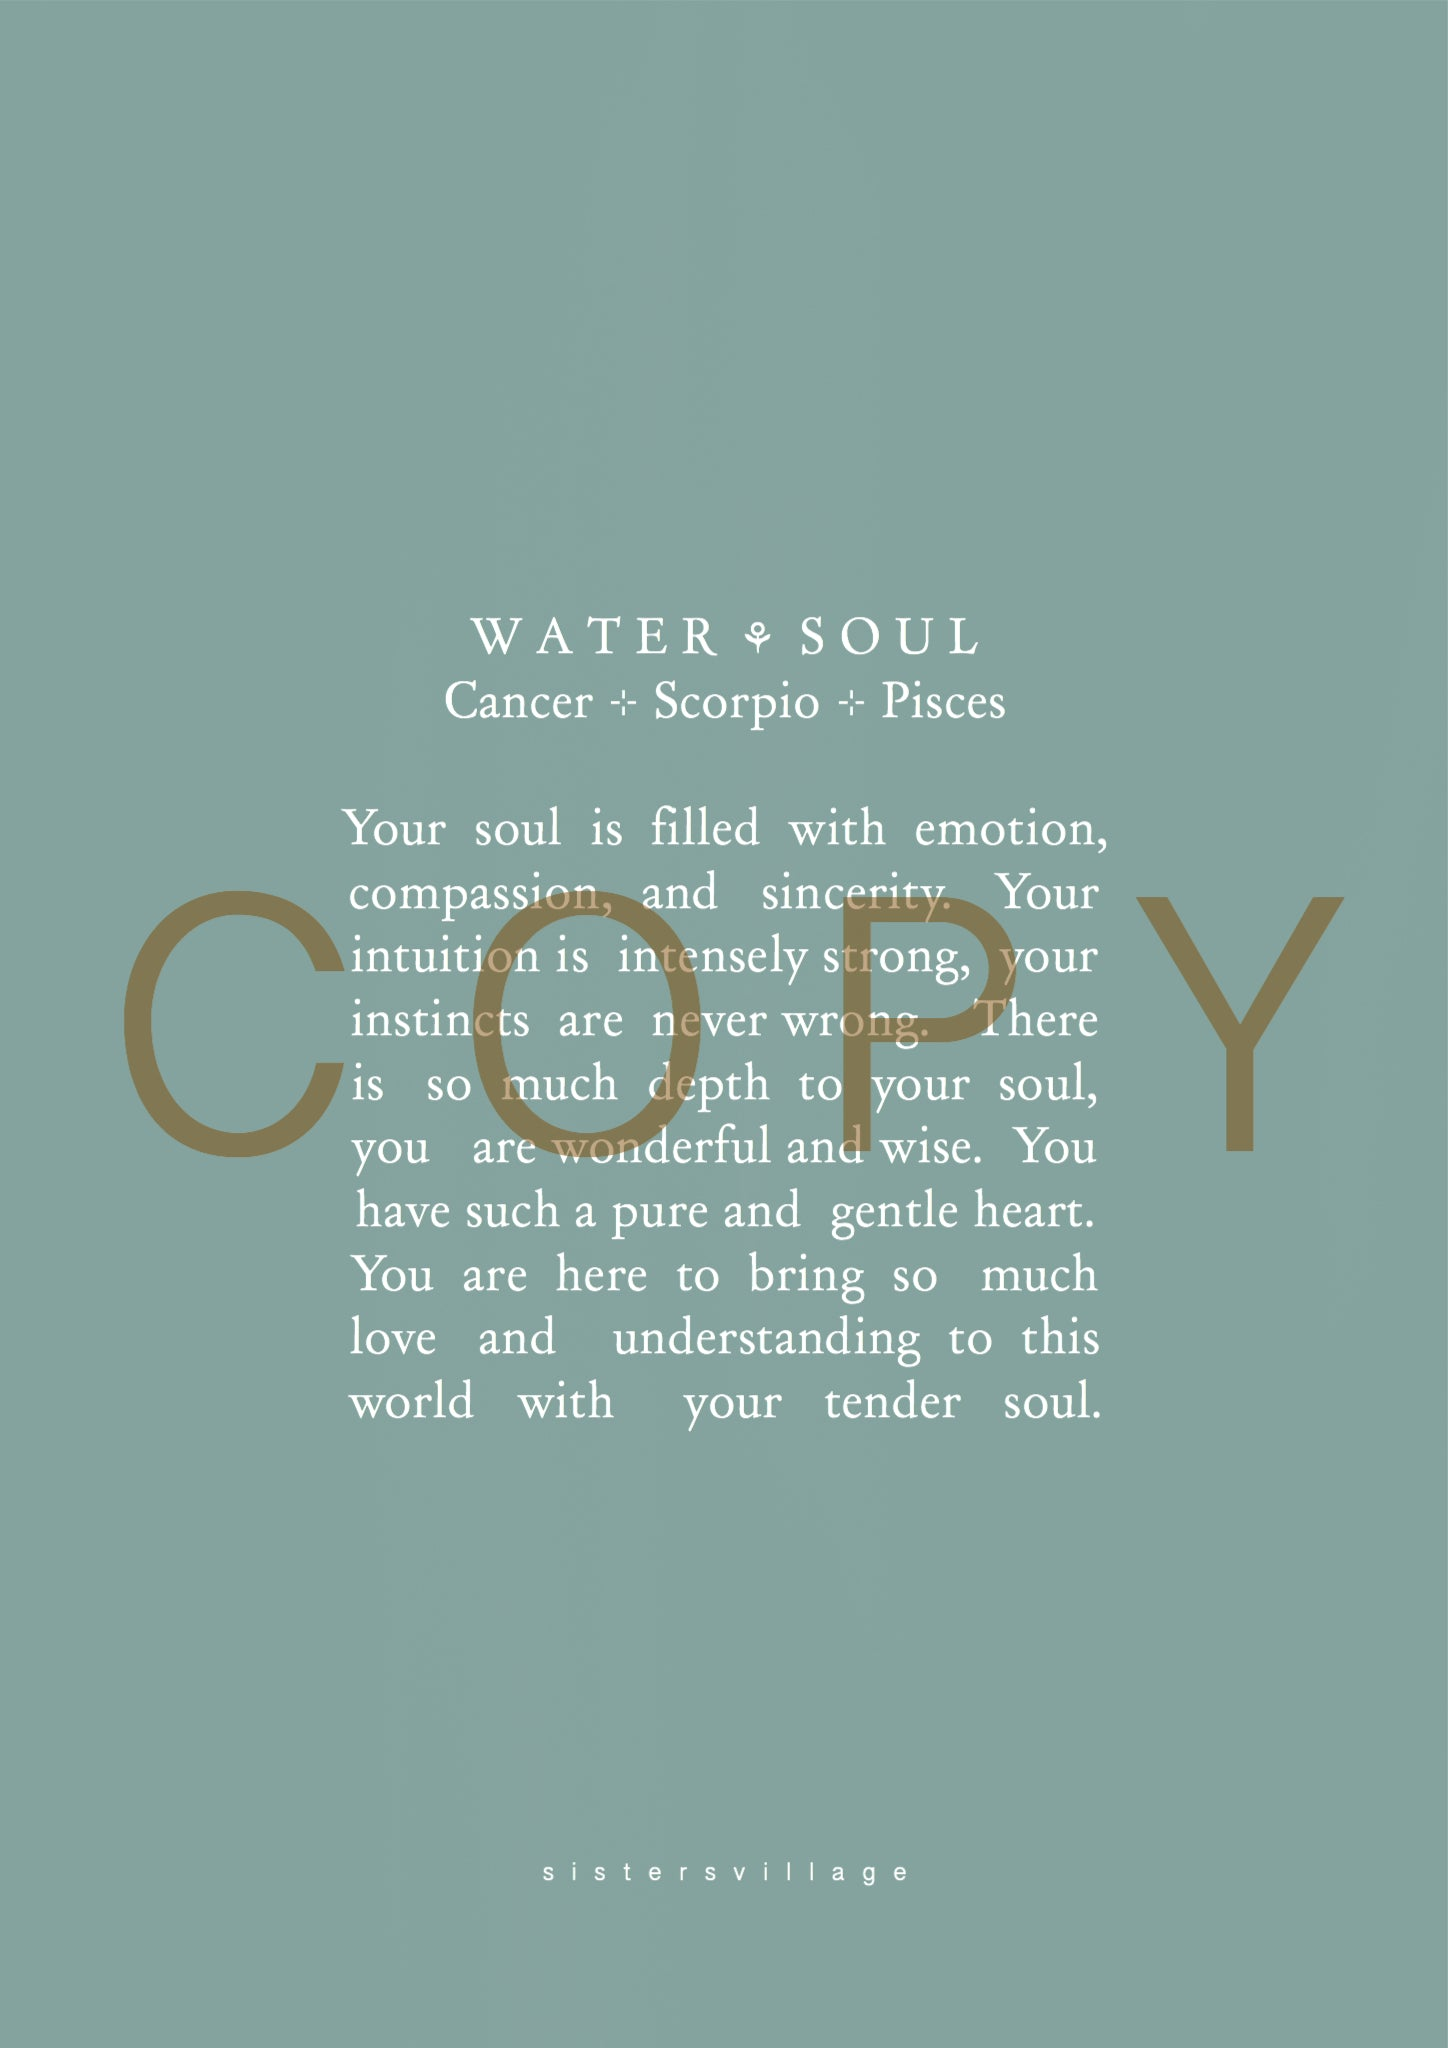 The soul of Water